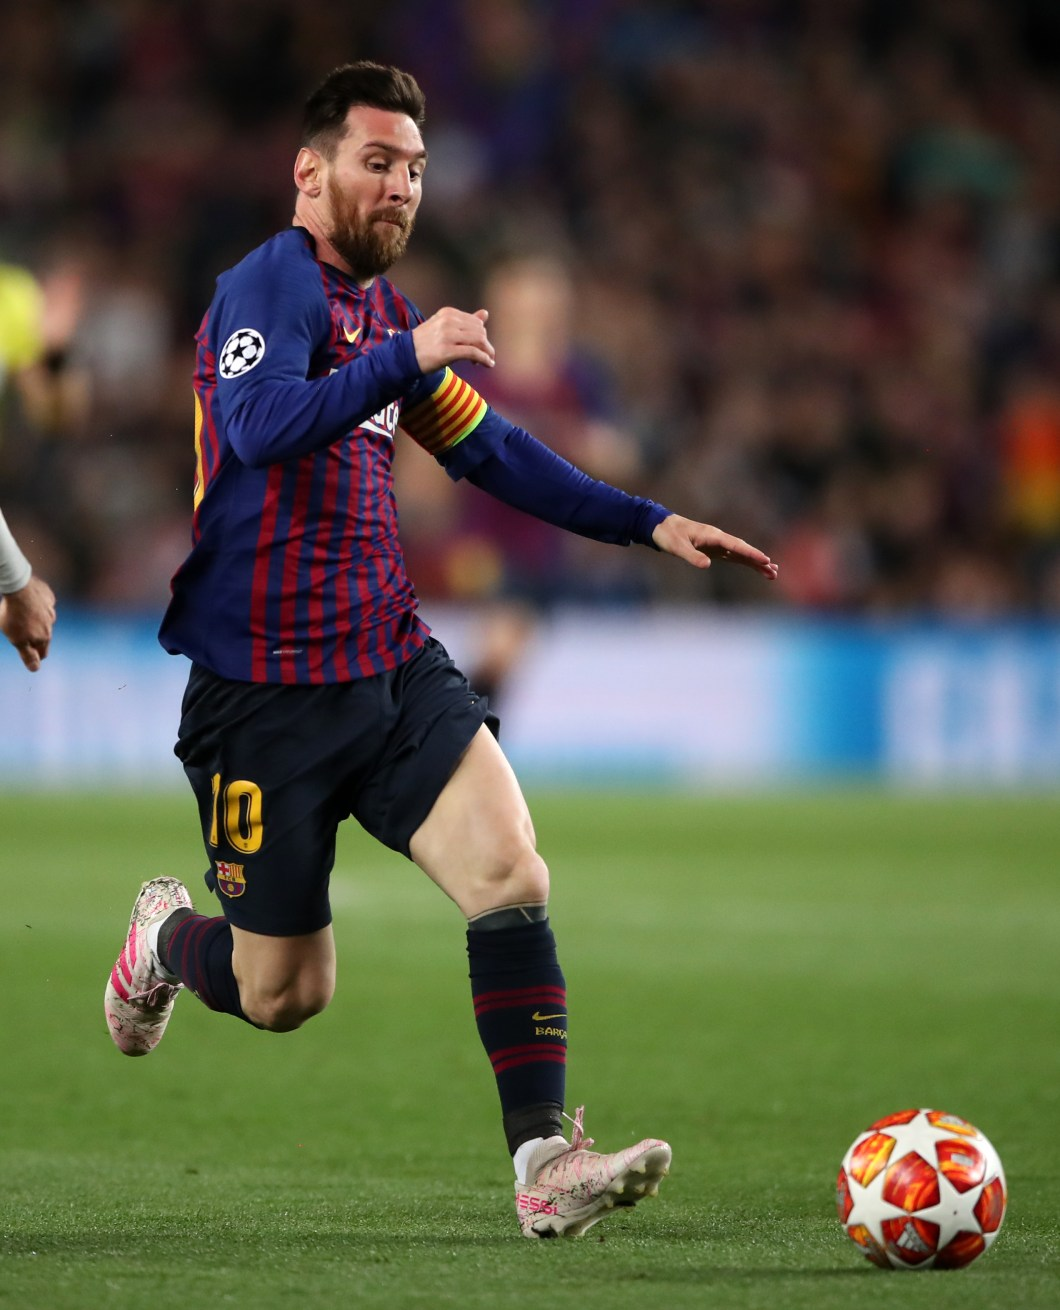 Cristiano Ronaldo rates Barcelona's Lionel Messi as the best player he has come up against